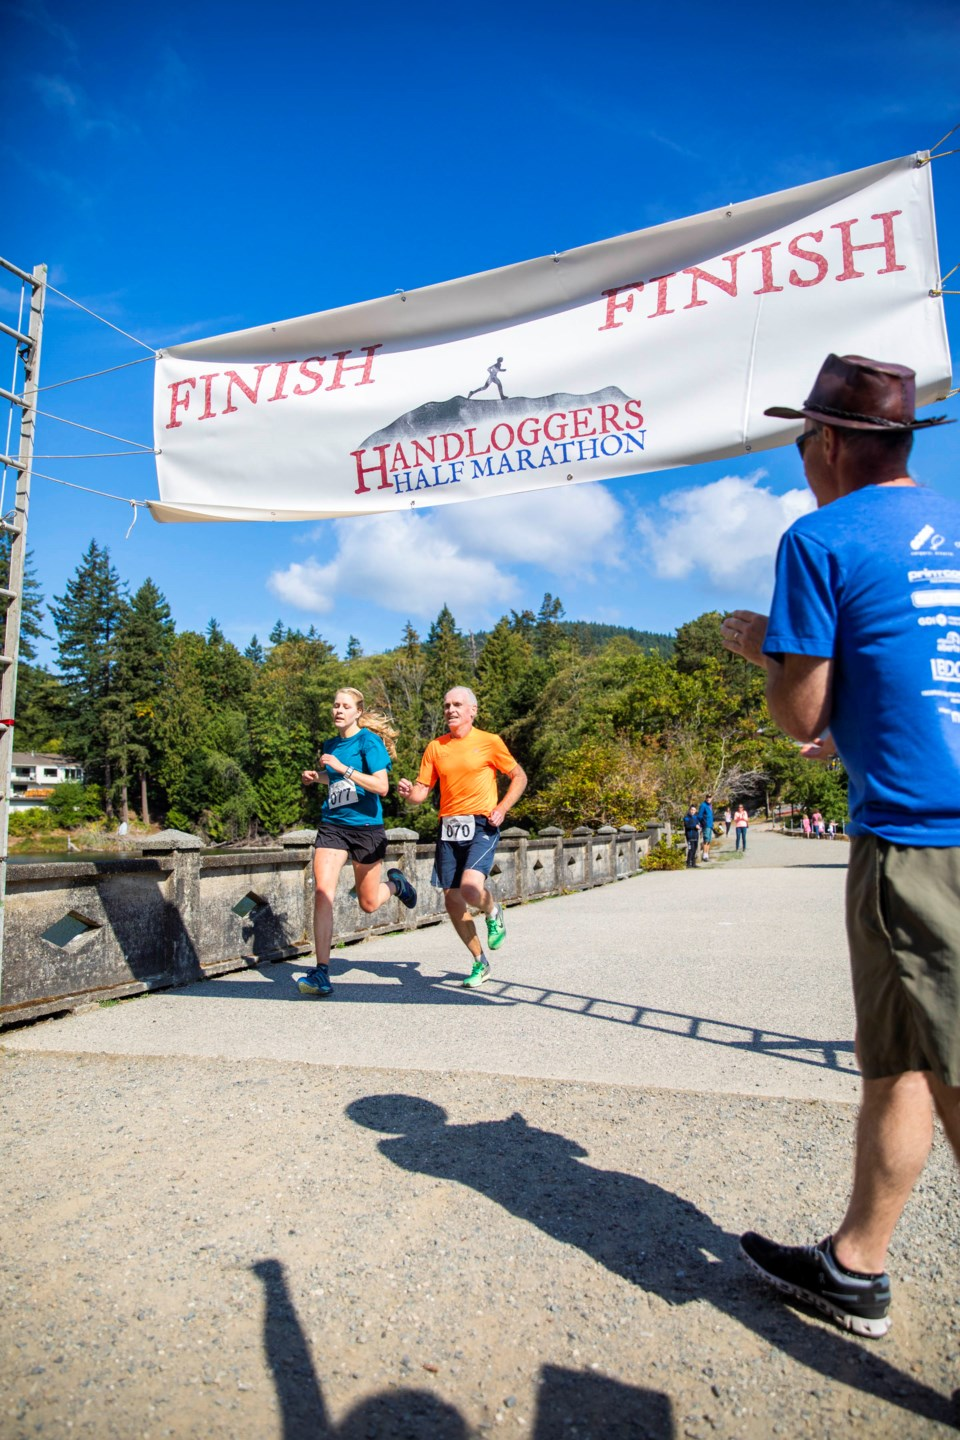 A couple of last year's top finisher's crossing the Causeway finish line.